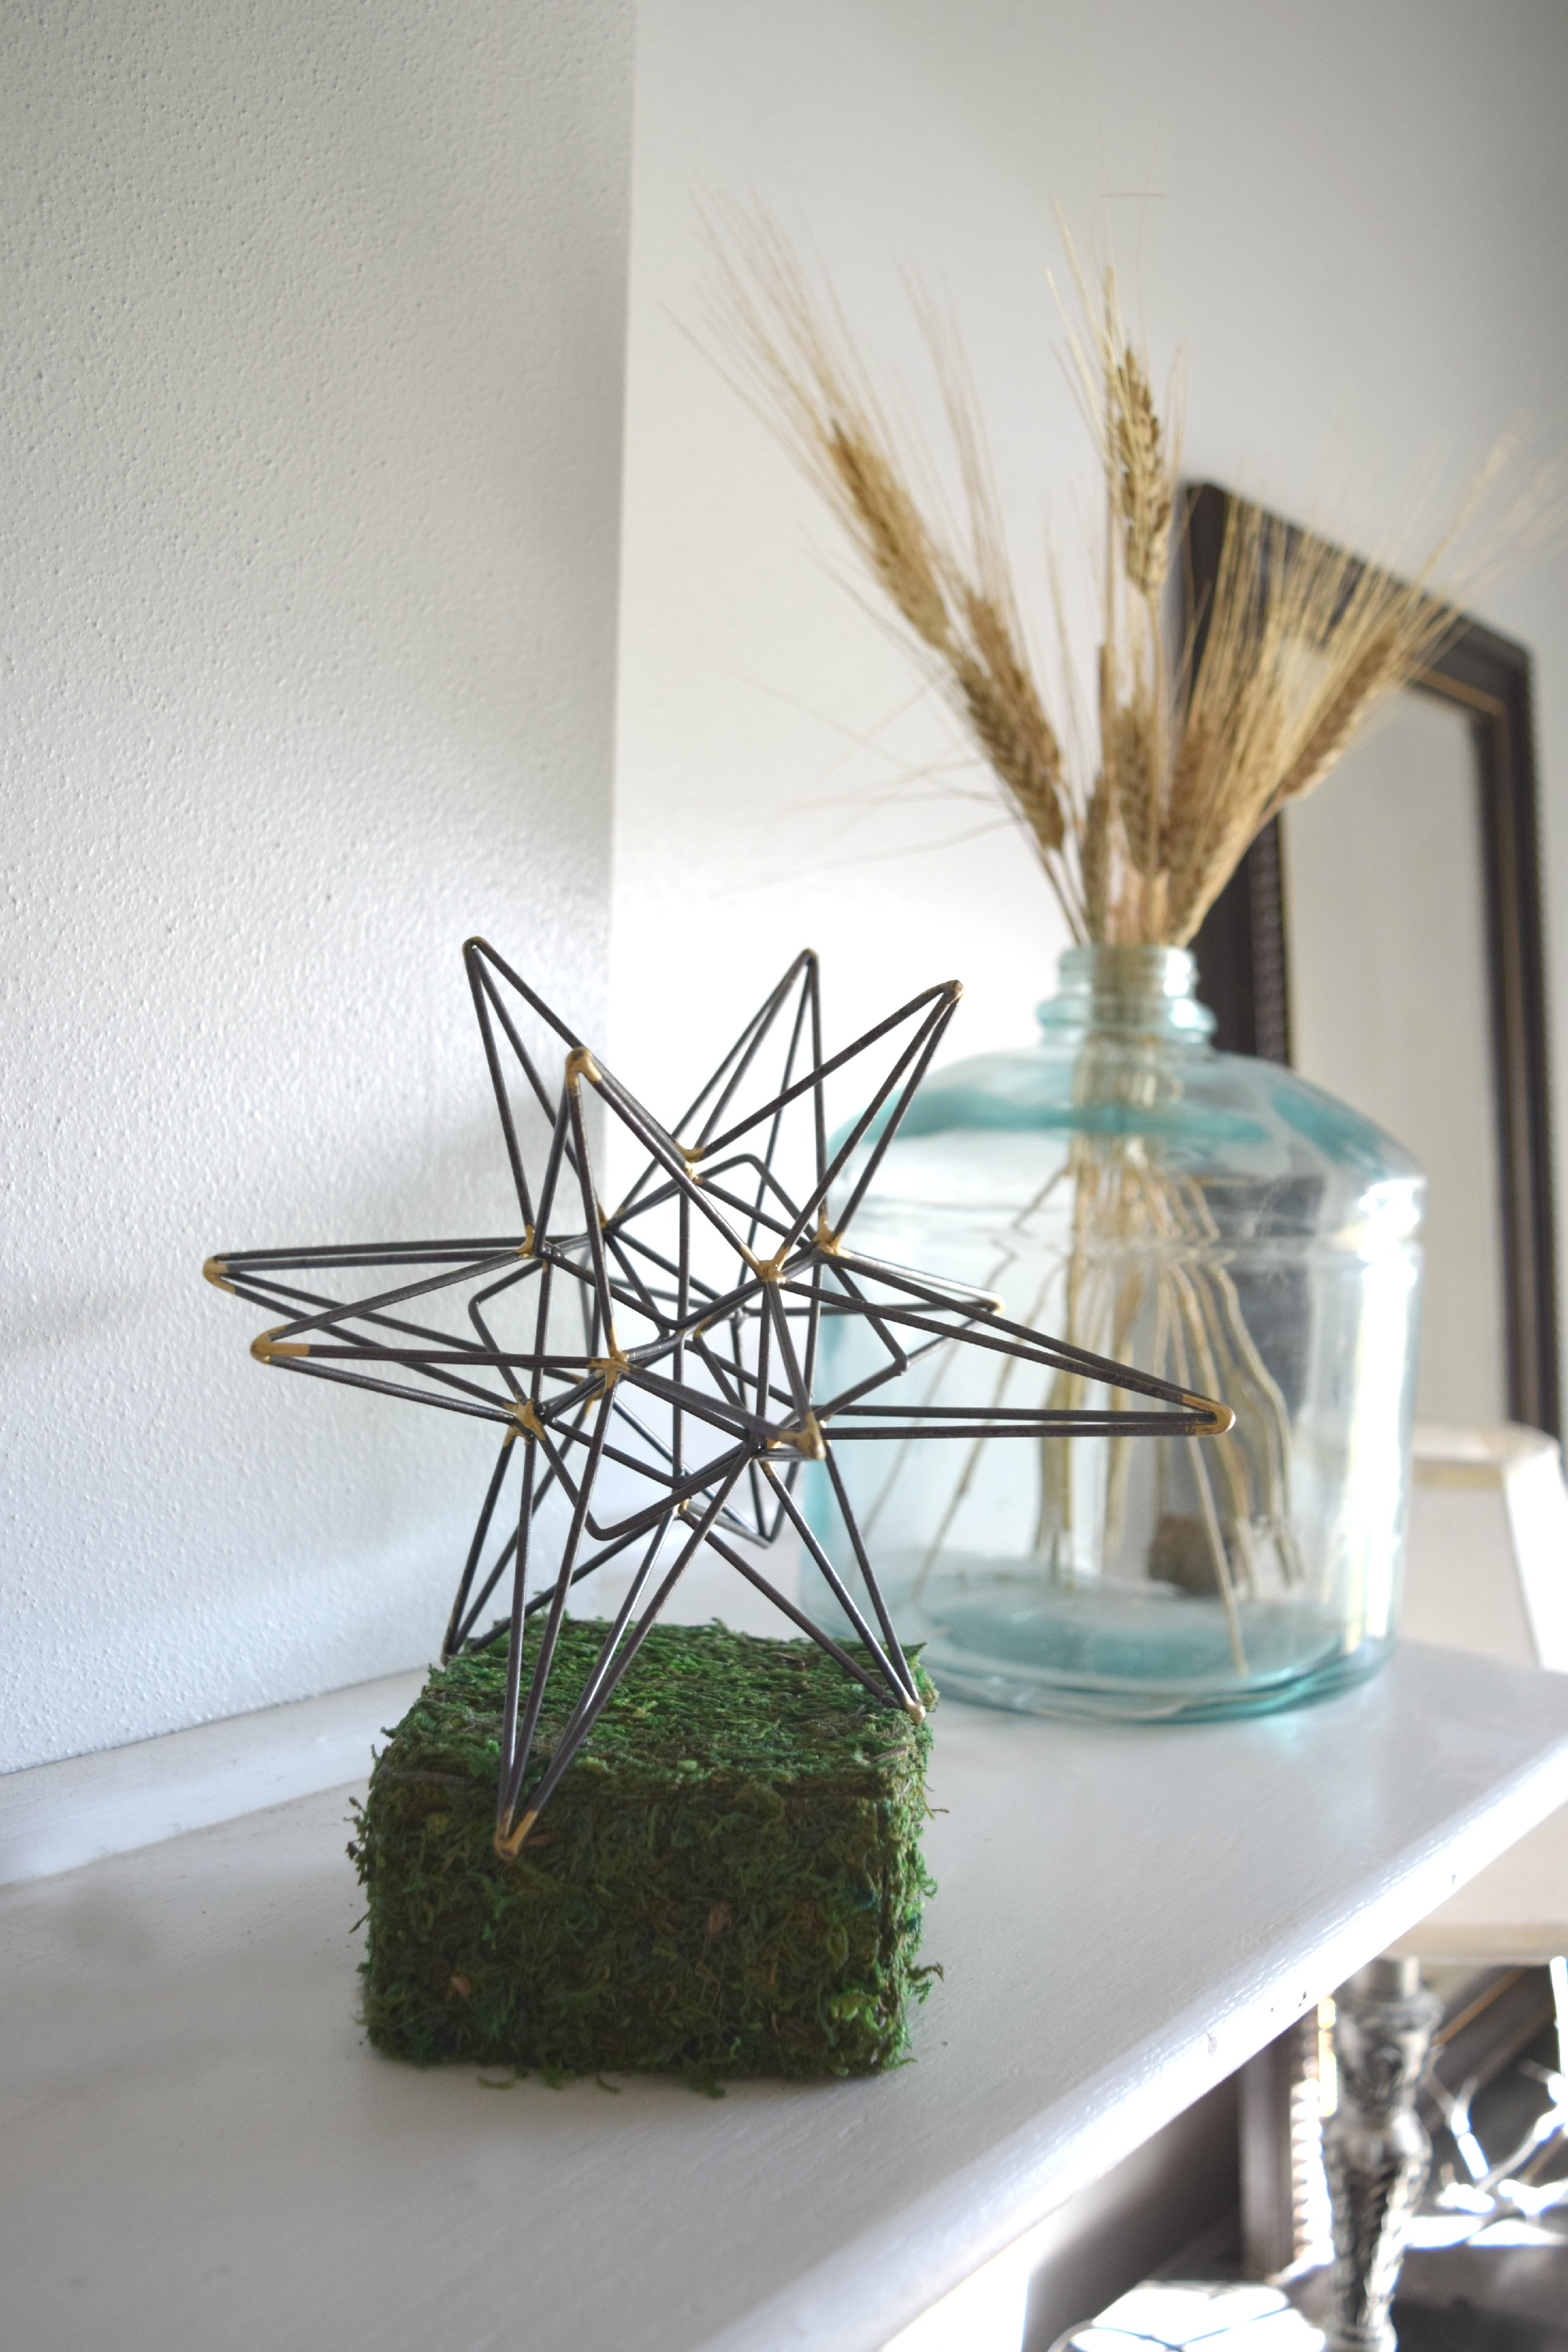 star metal orb in home decor